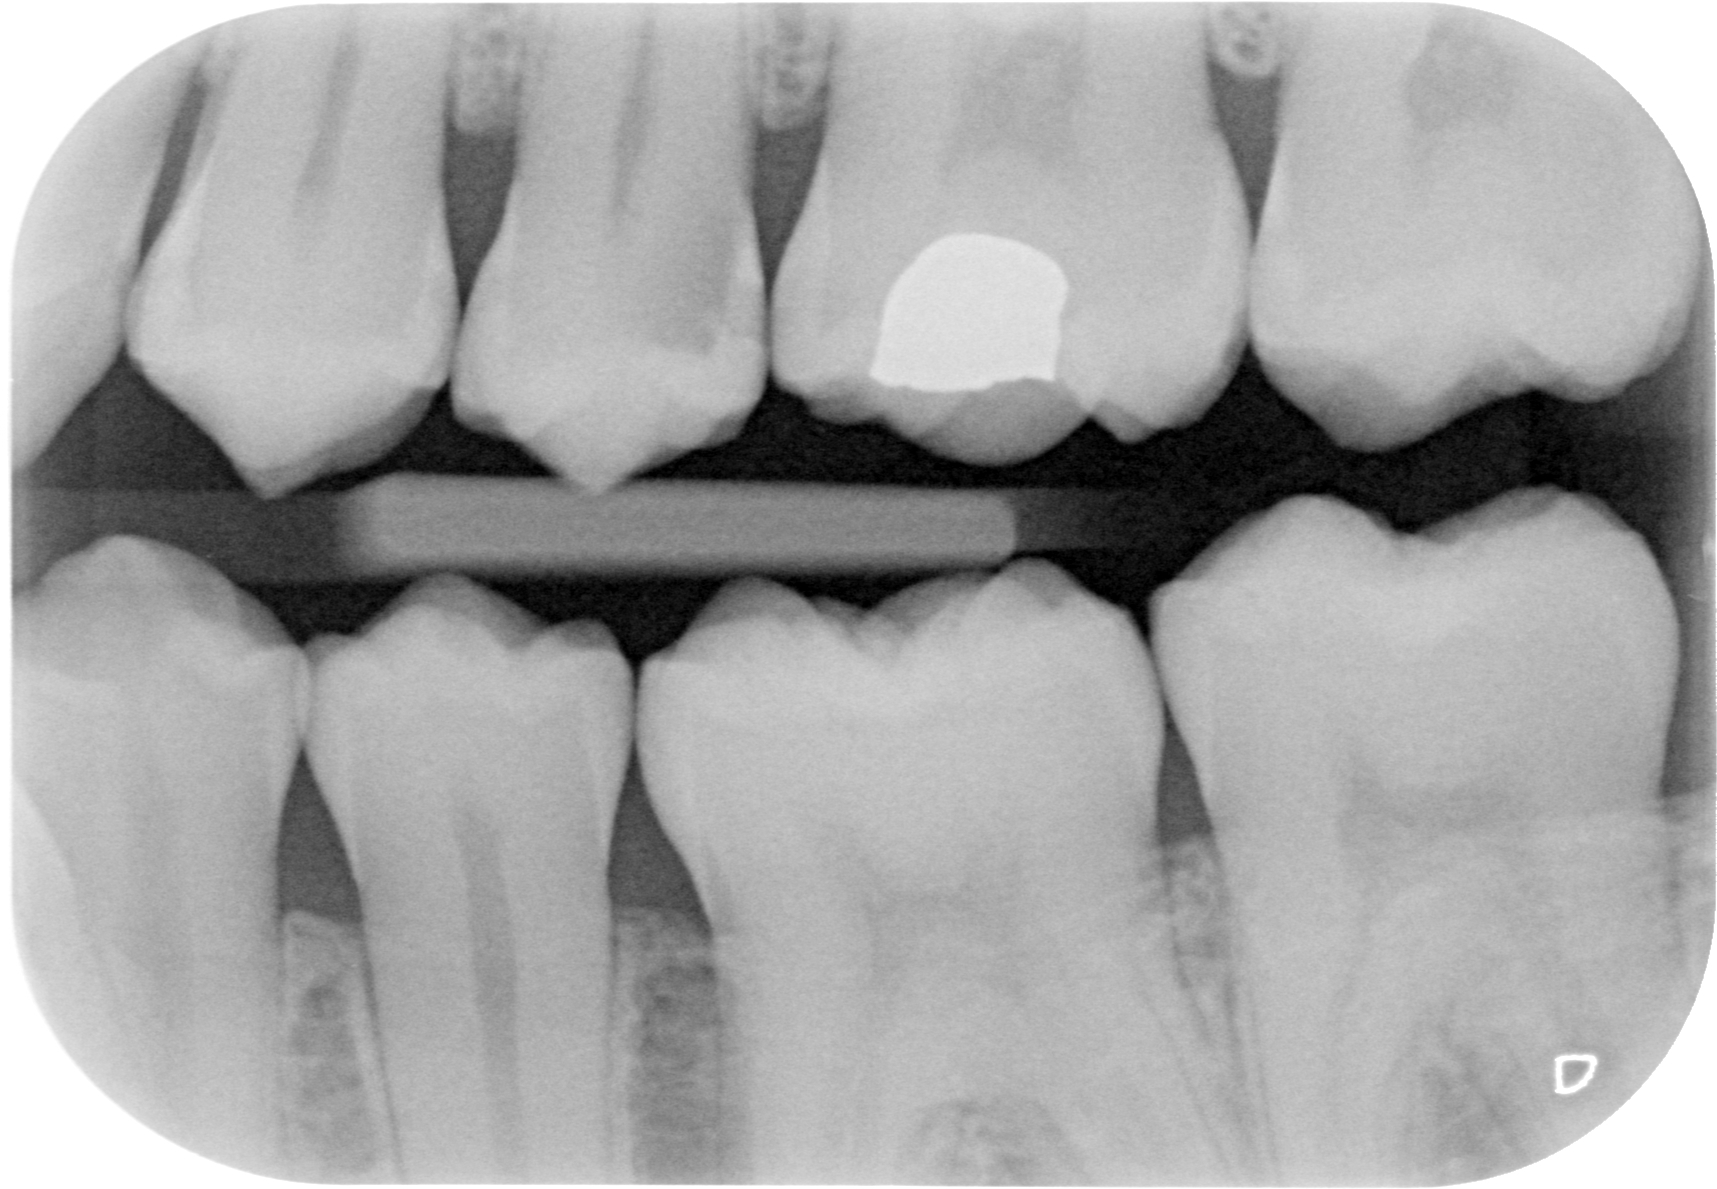 The Bright White Spot is an Amalgam Filling. There is Significant Decay Next to the Filling.